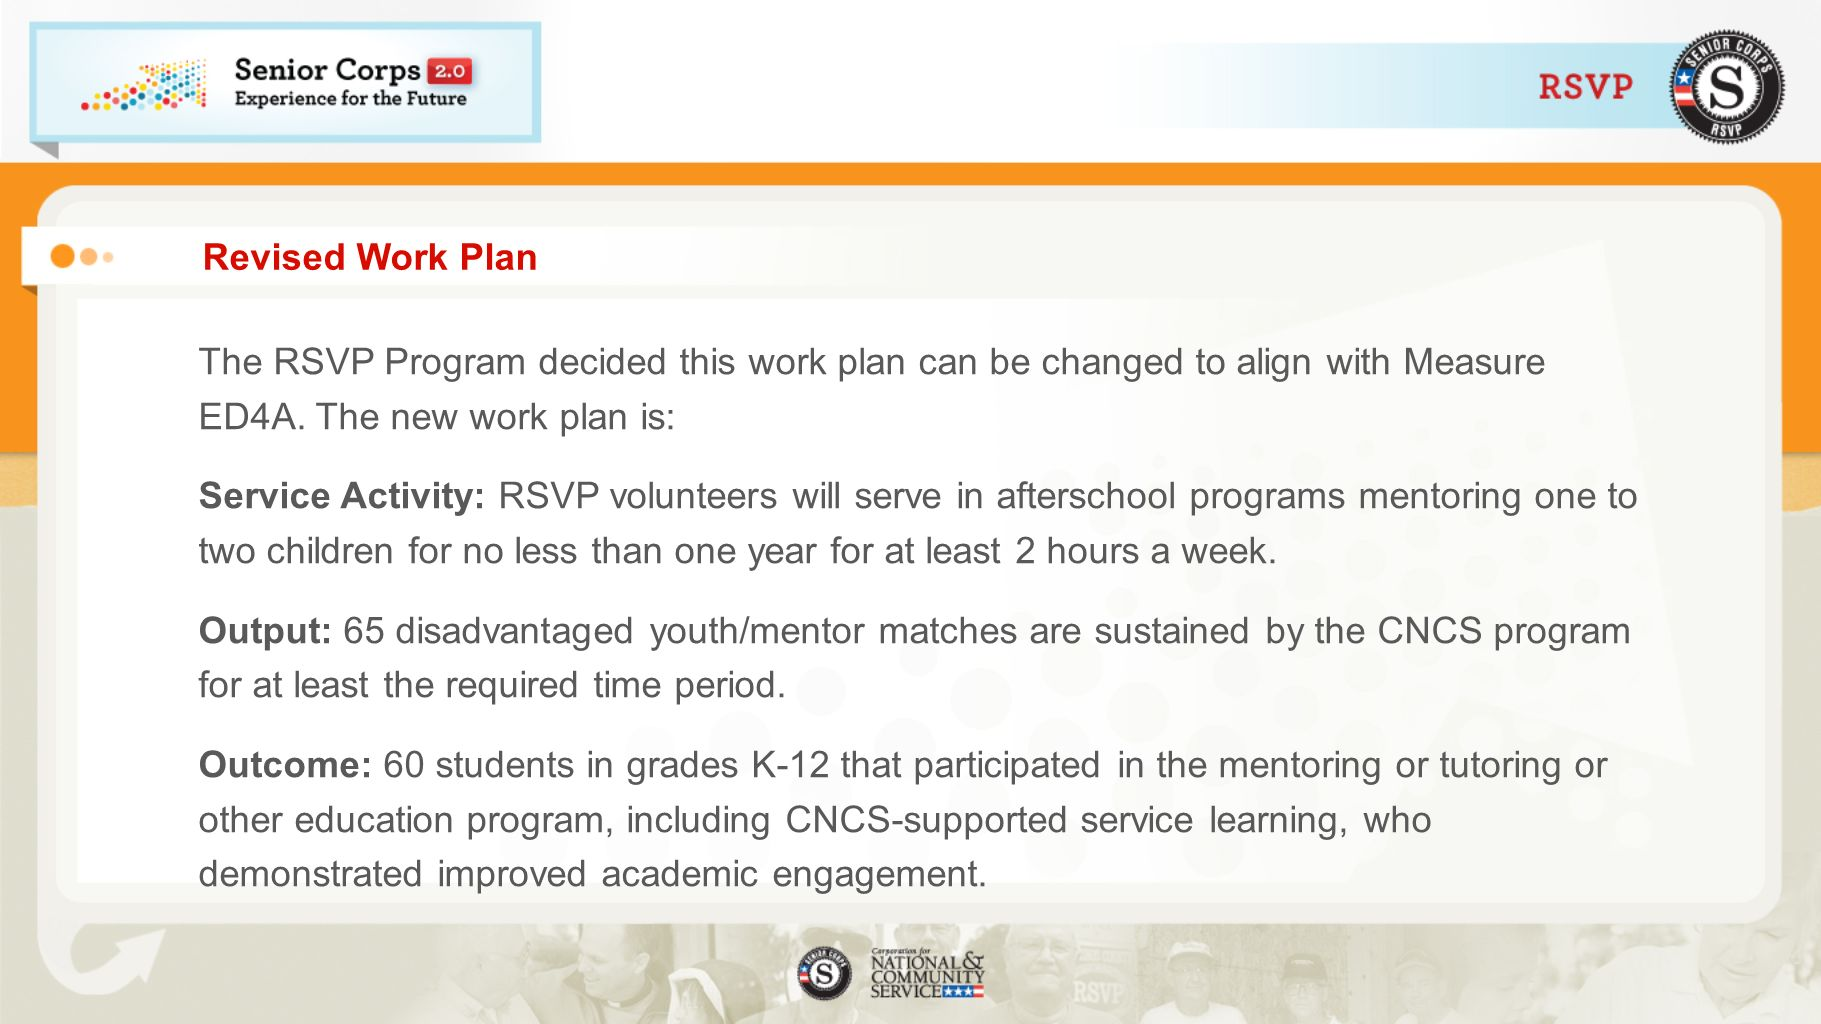 Revised Work PlanThe RSVP Program decided this work plan can be changed to align with Measure ED4A. The new work plan is: